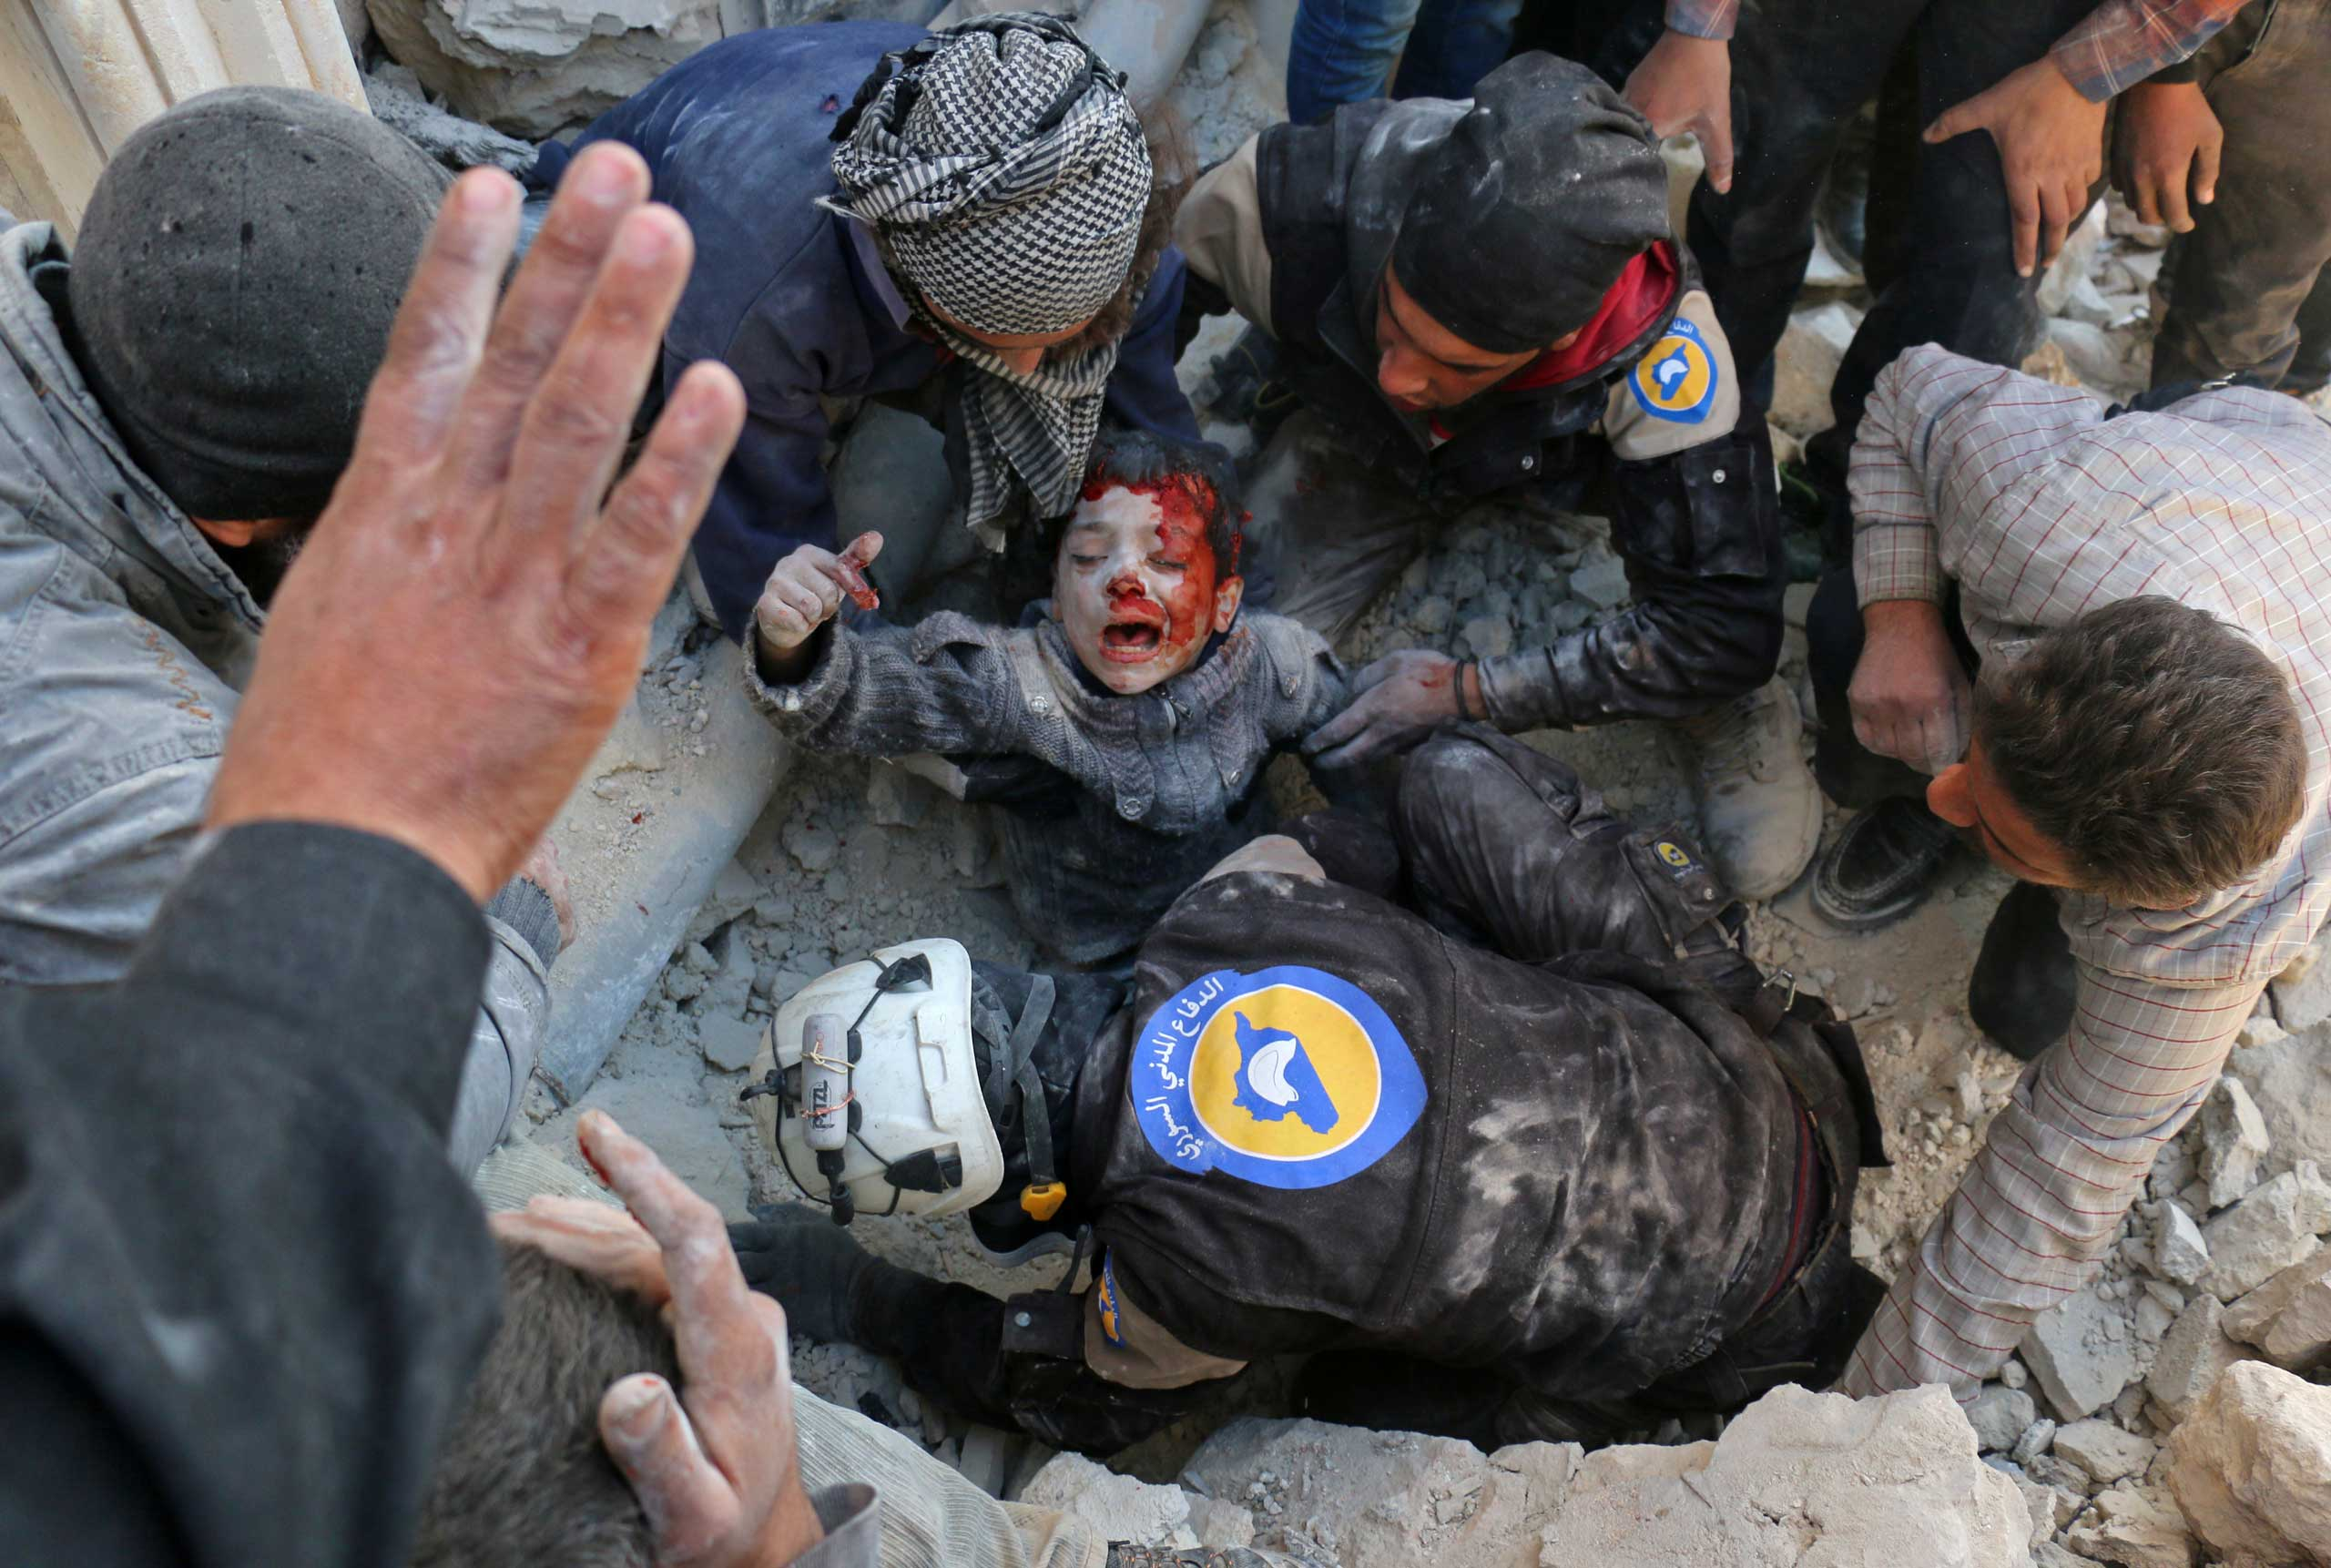 Syrian civil defence volunteers, known as the White Helmets, rescue a boy from the rubble following a reported barrel bomb attack on the Bab al-Nairab neighbourhood of the northern Syrian city of Aleppo on Nov. 24, 2016.